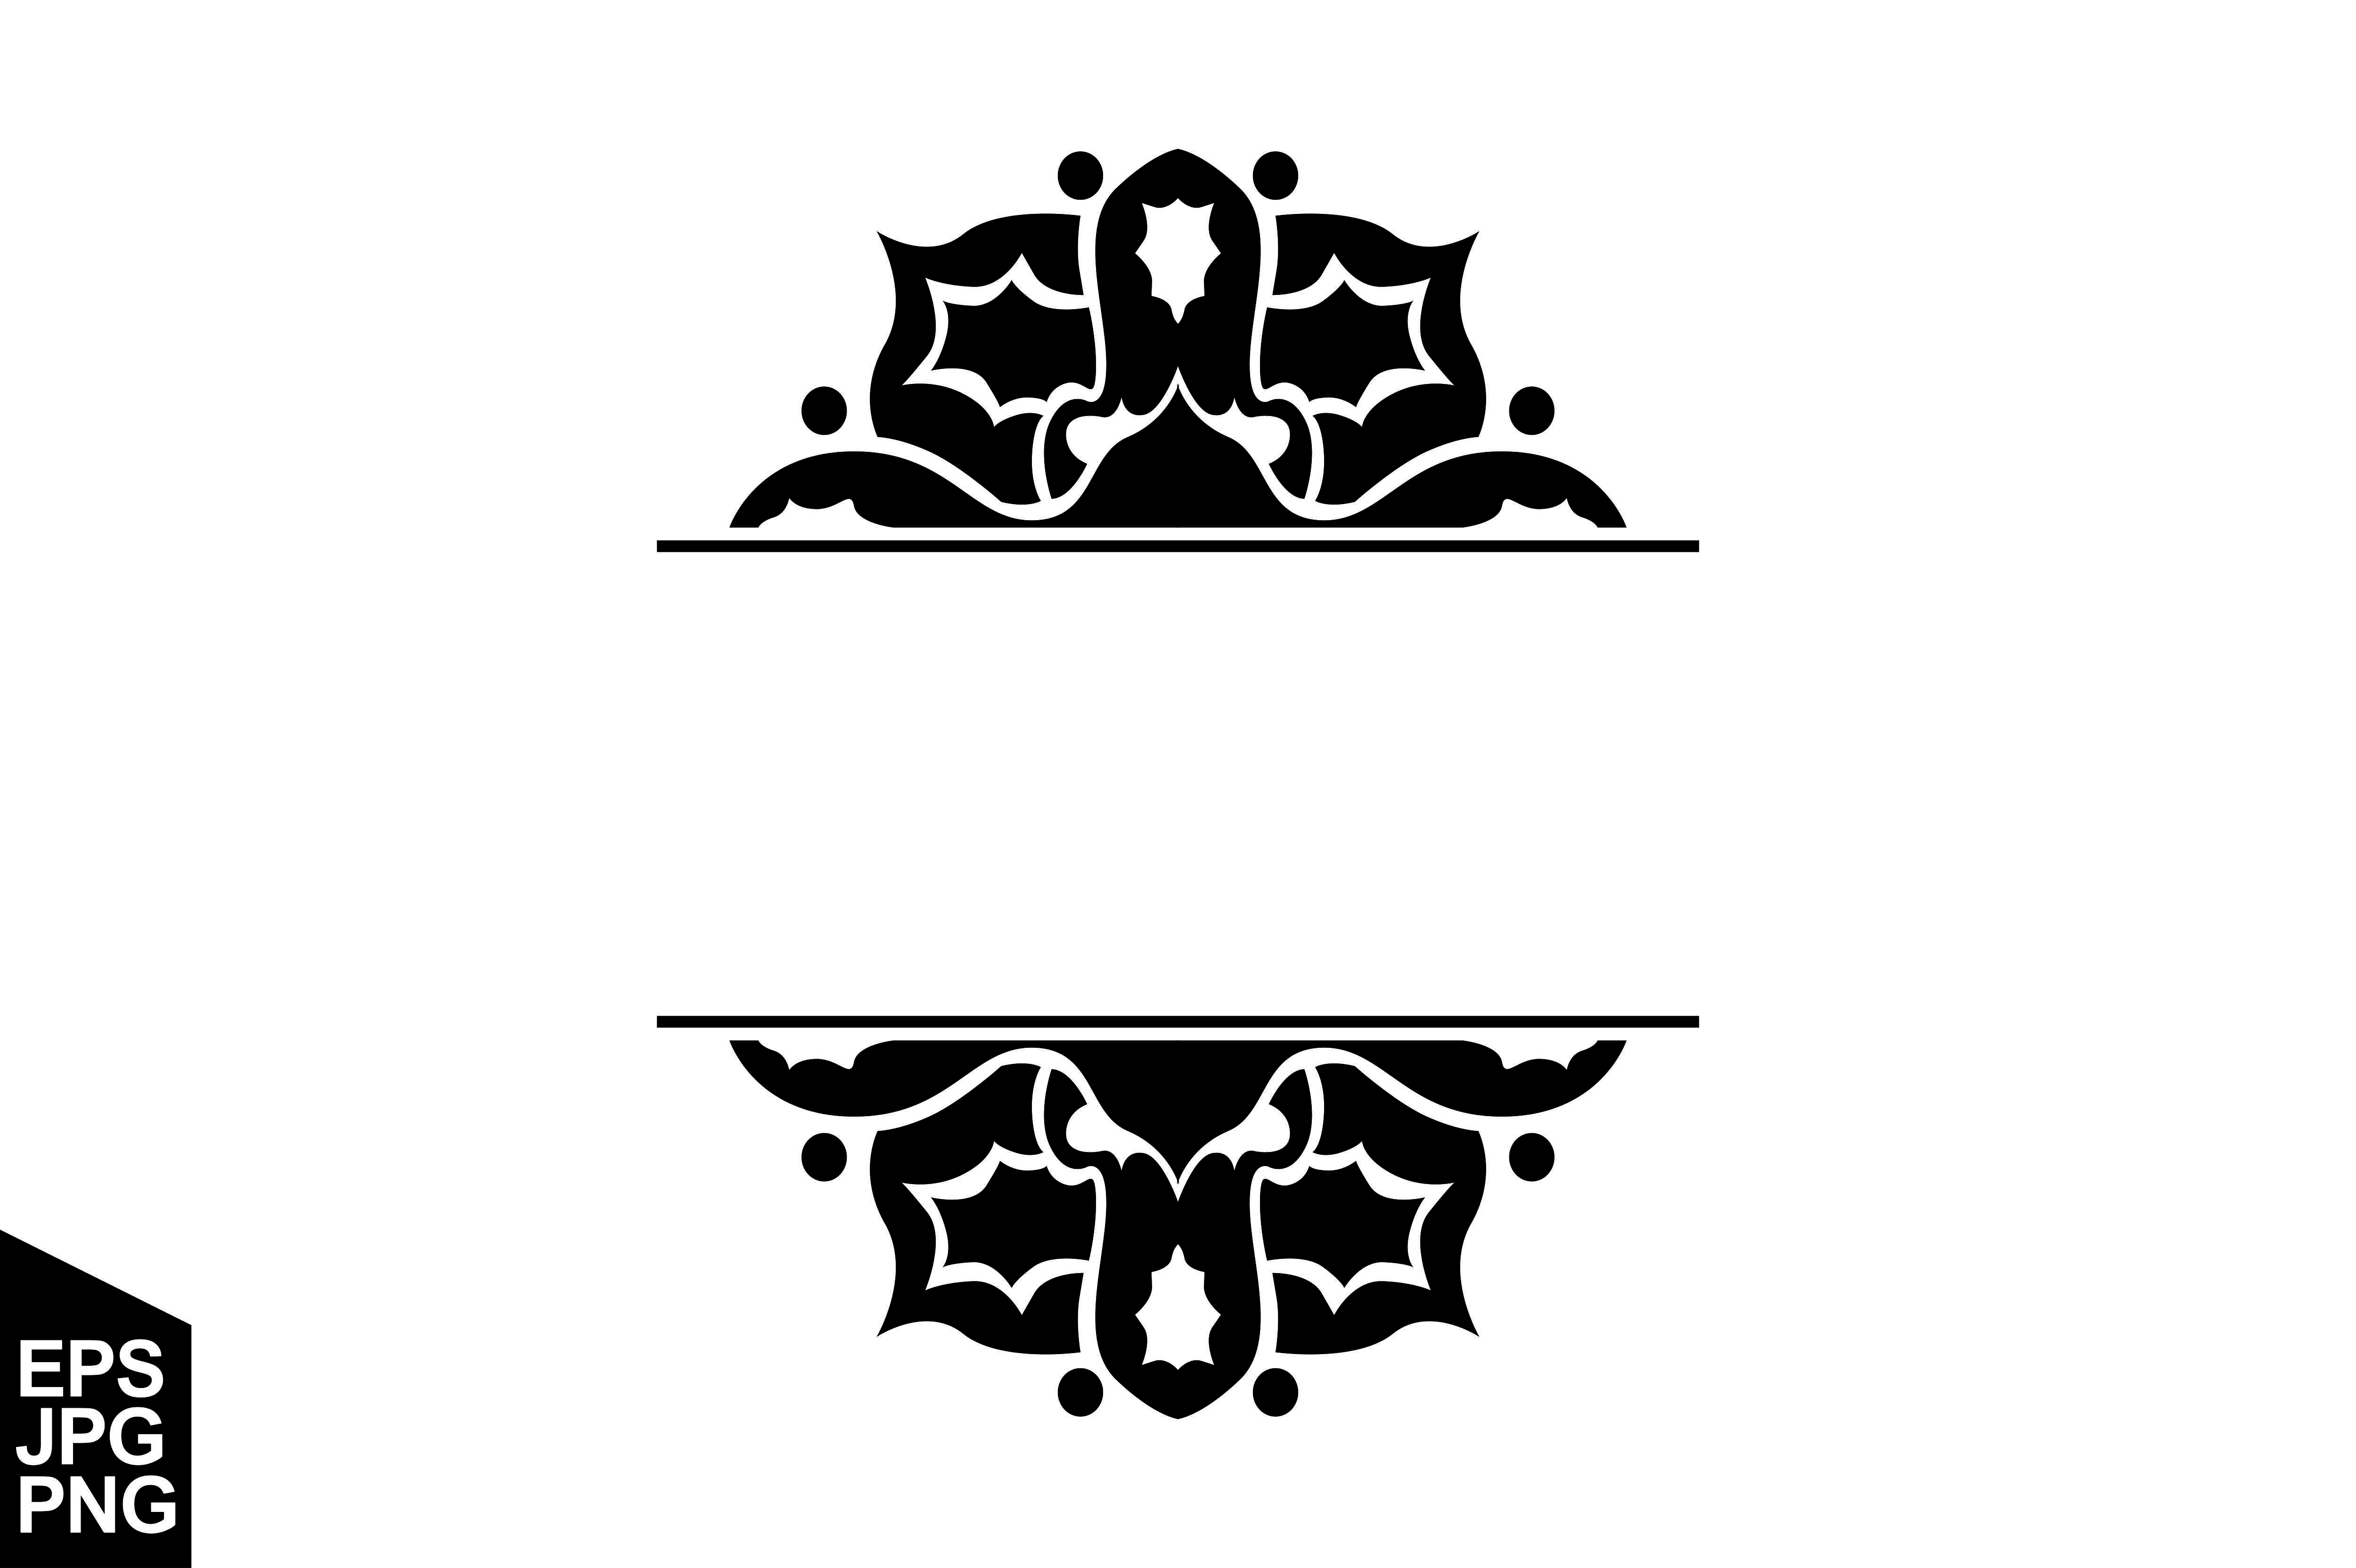 Download Free Ornament Border Decoration Vector Graphic By Arief Sapta Adjie for Cricut Explore, Silhouette and other cutting machines.